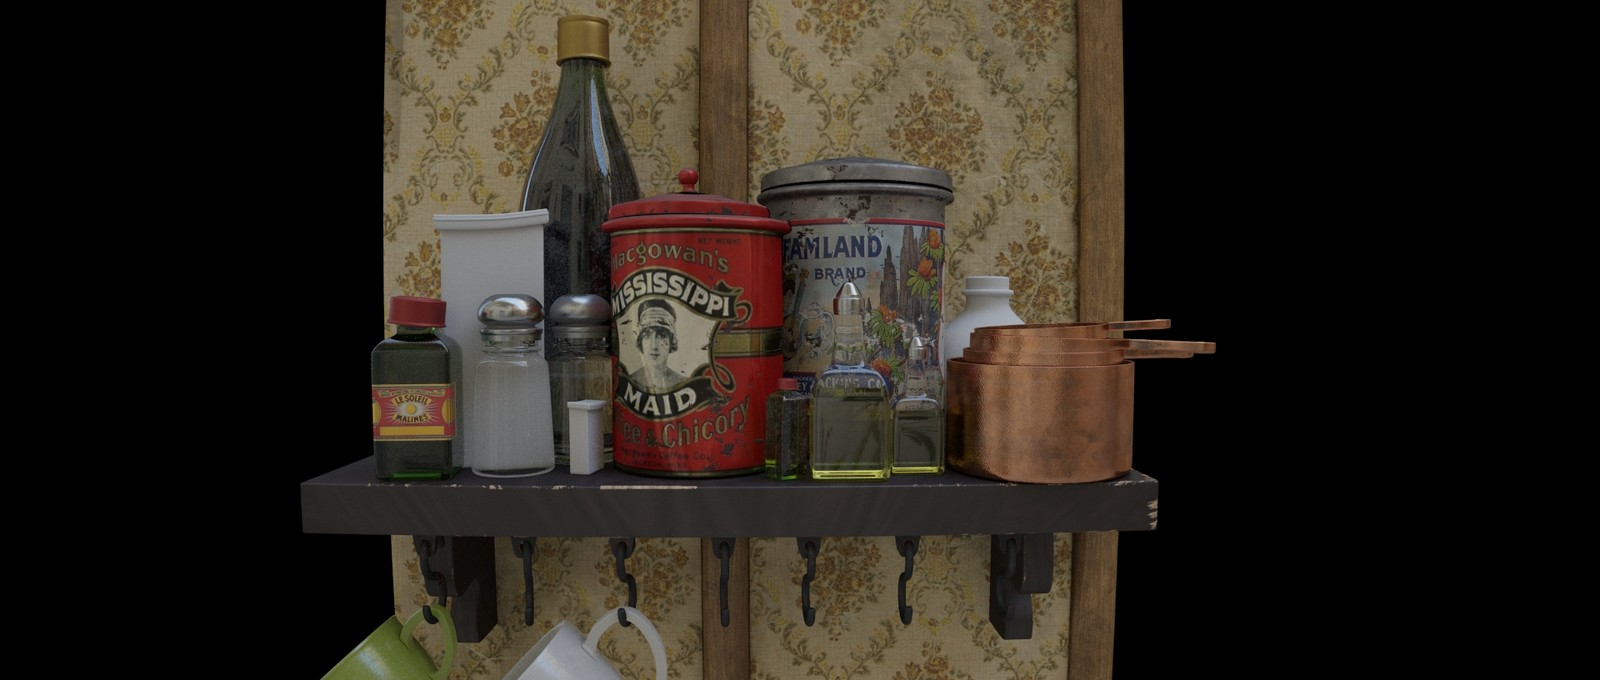 Shading Process - Procedural Glasses and Shelf Items